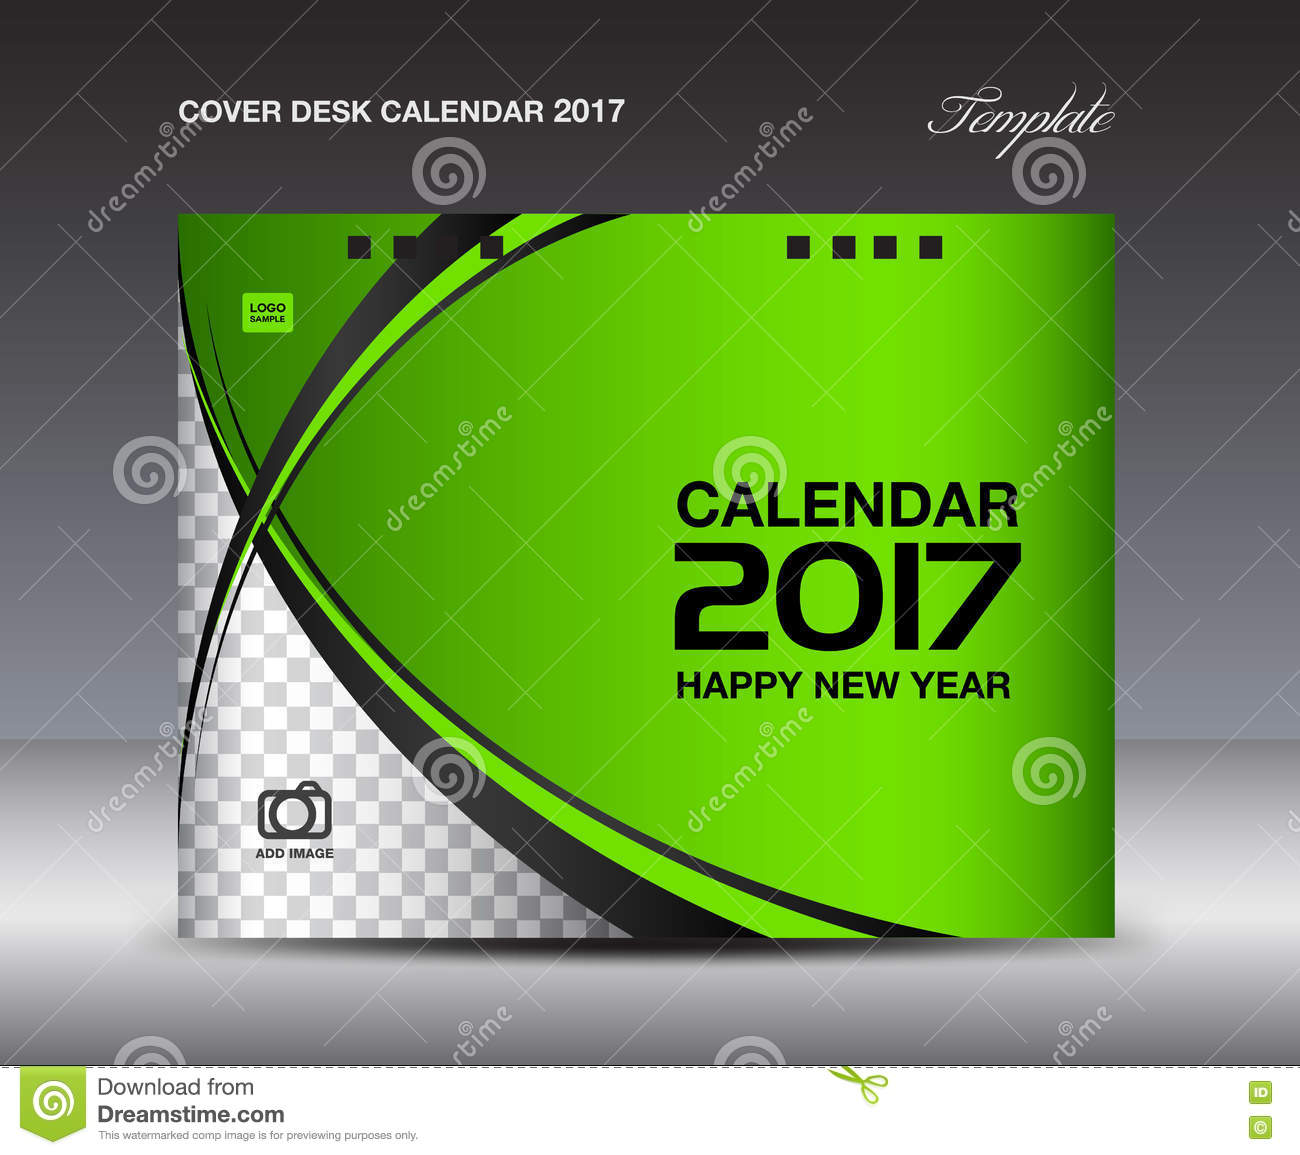 New Year Calendar Design : Green cover desk calendar design template